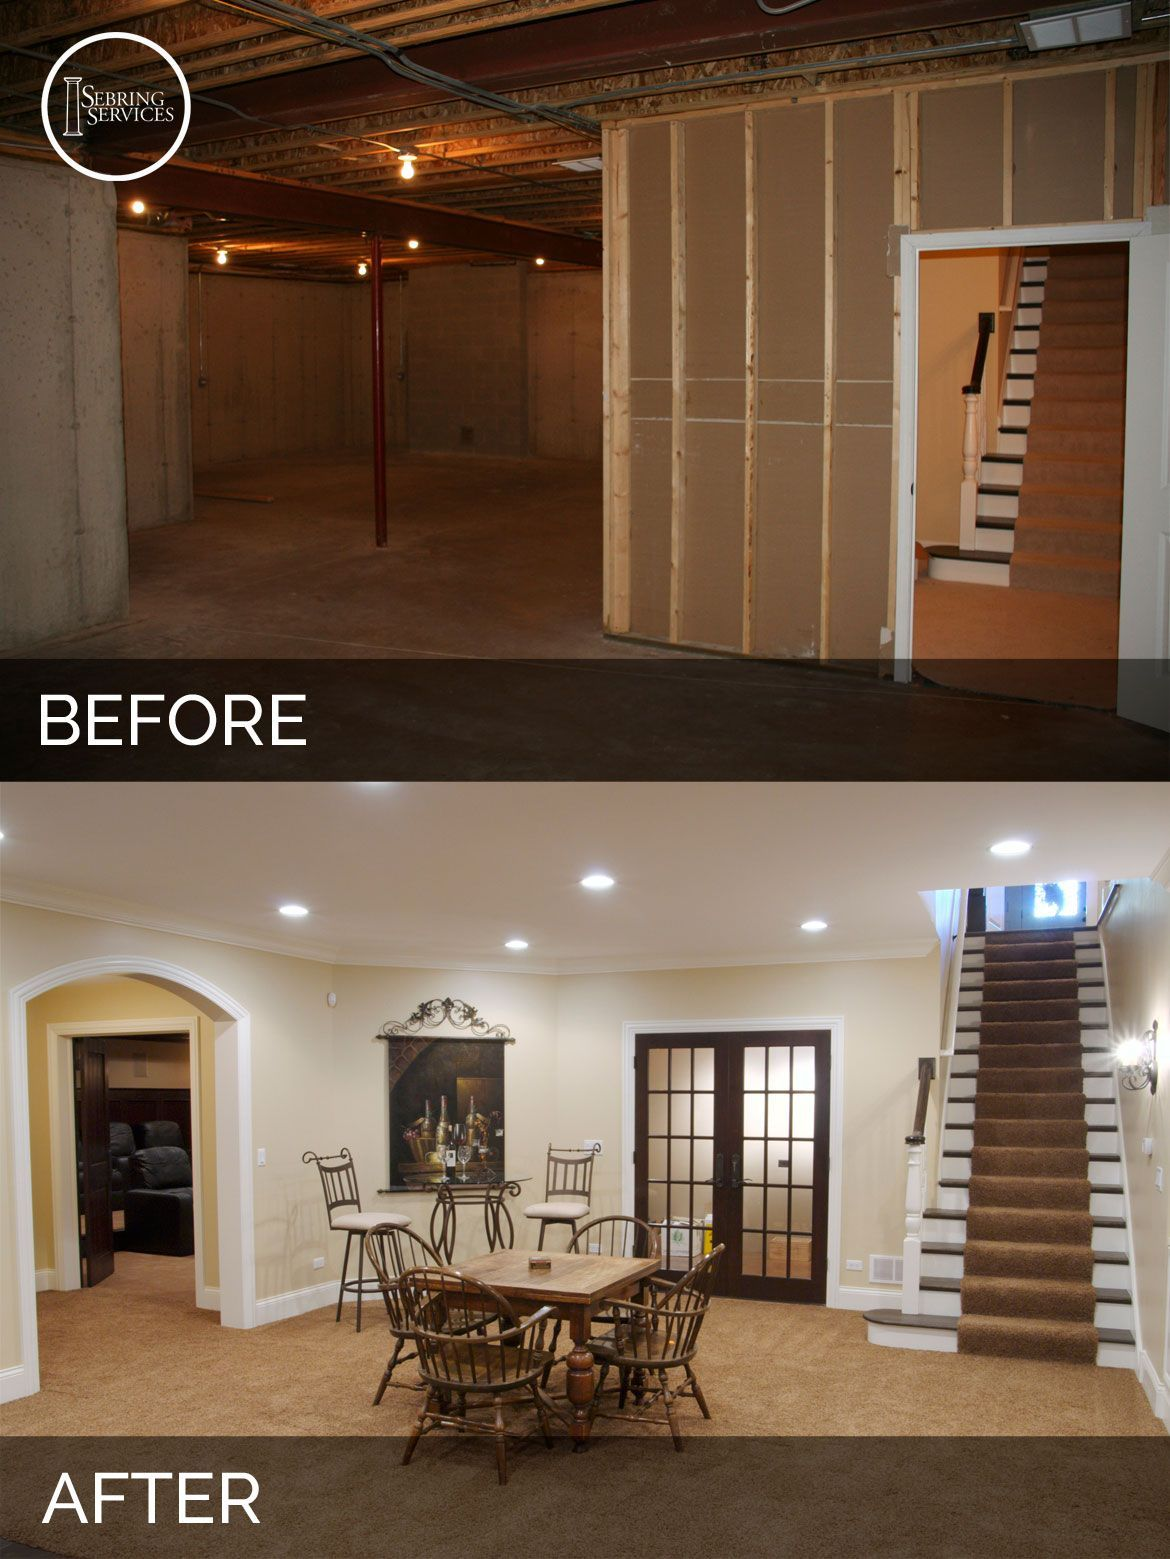 Steve & Elaine's Basement Before & After Pictures